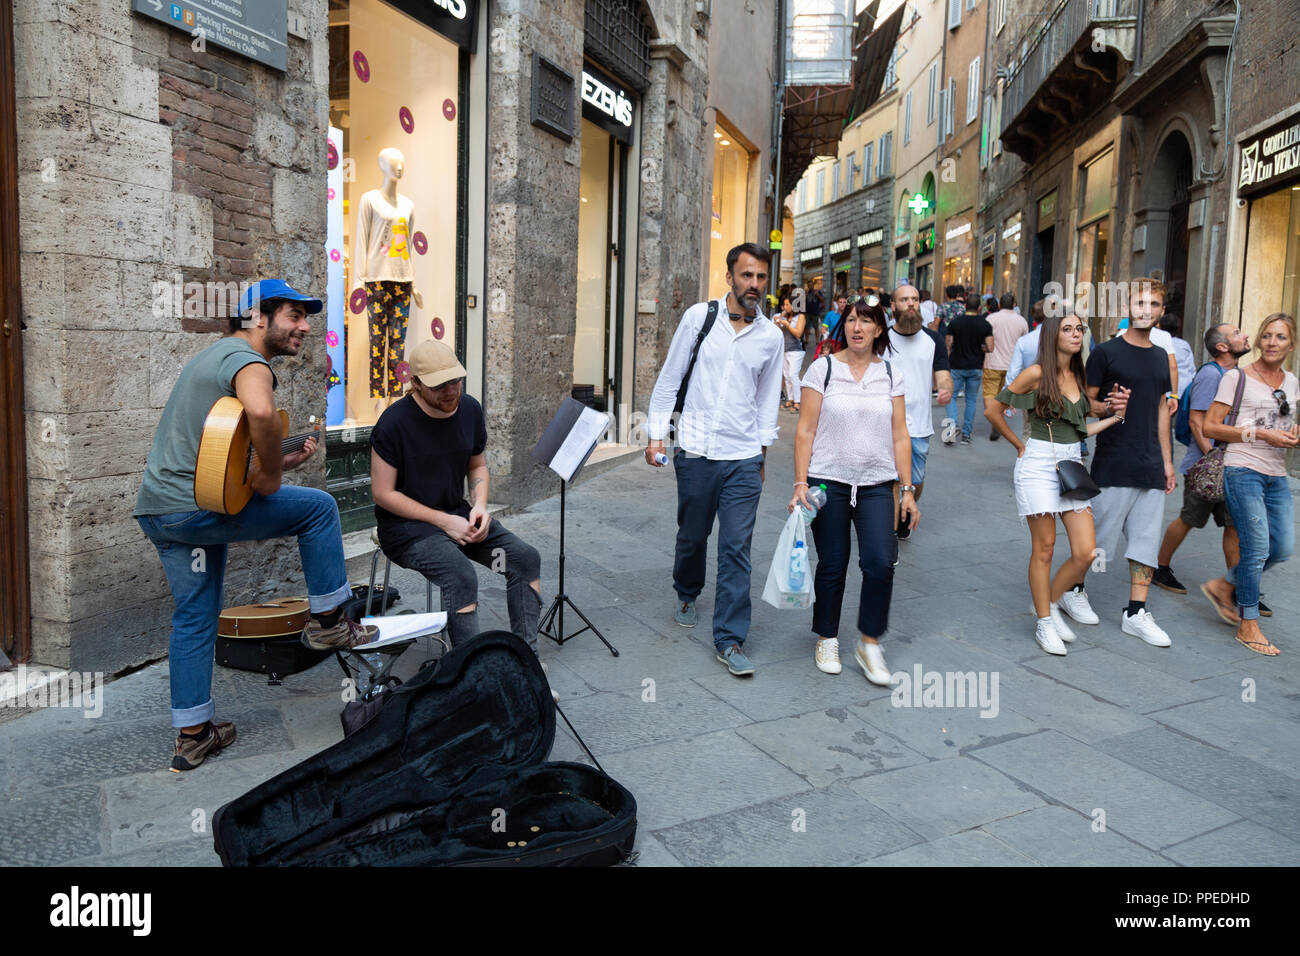 Two buskers busking on the street, Siena, Tuscany Italy Europe - Stock Image